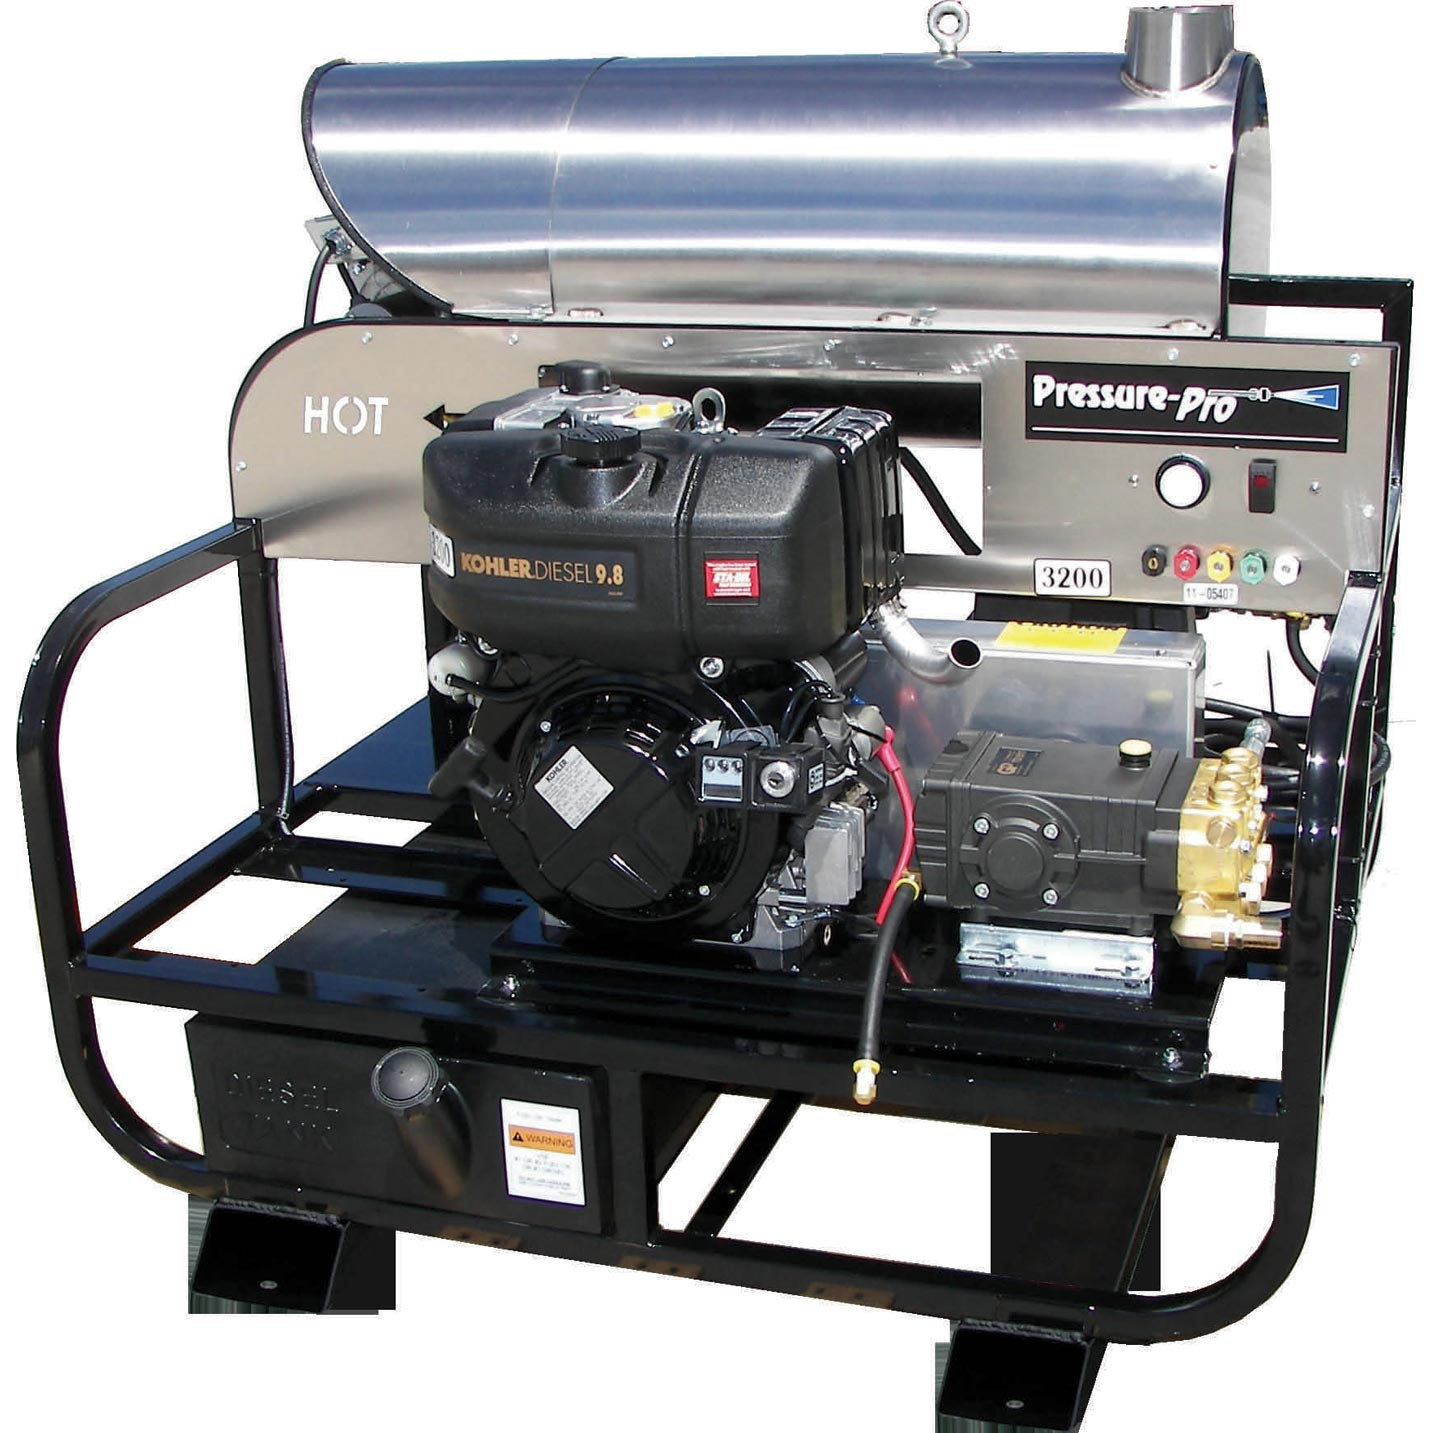 Pressure Pro 4012PRO-32KLDG Diesel Hot Water Skid 3200psi 4gpm Kohler Engine GP Pump Frieght Included